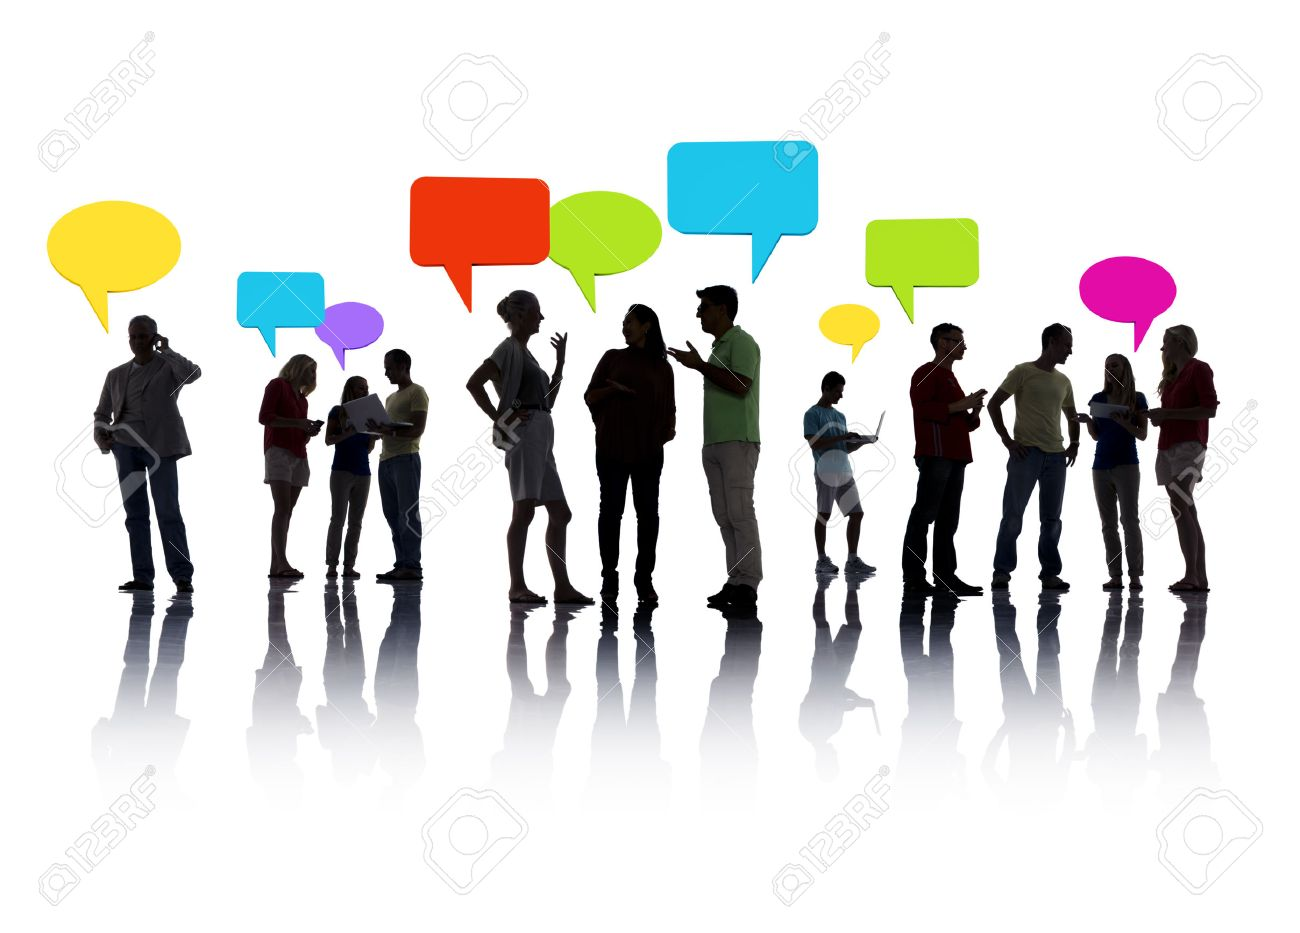 Group of People interacting Stock Photo - 31292937